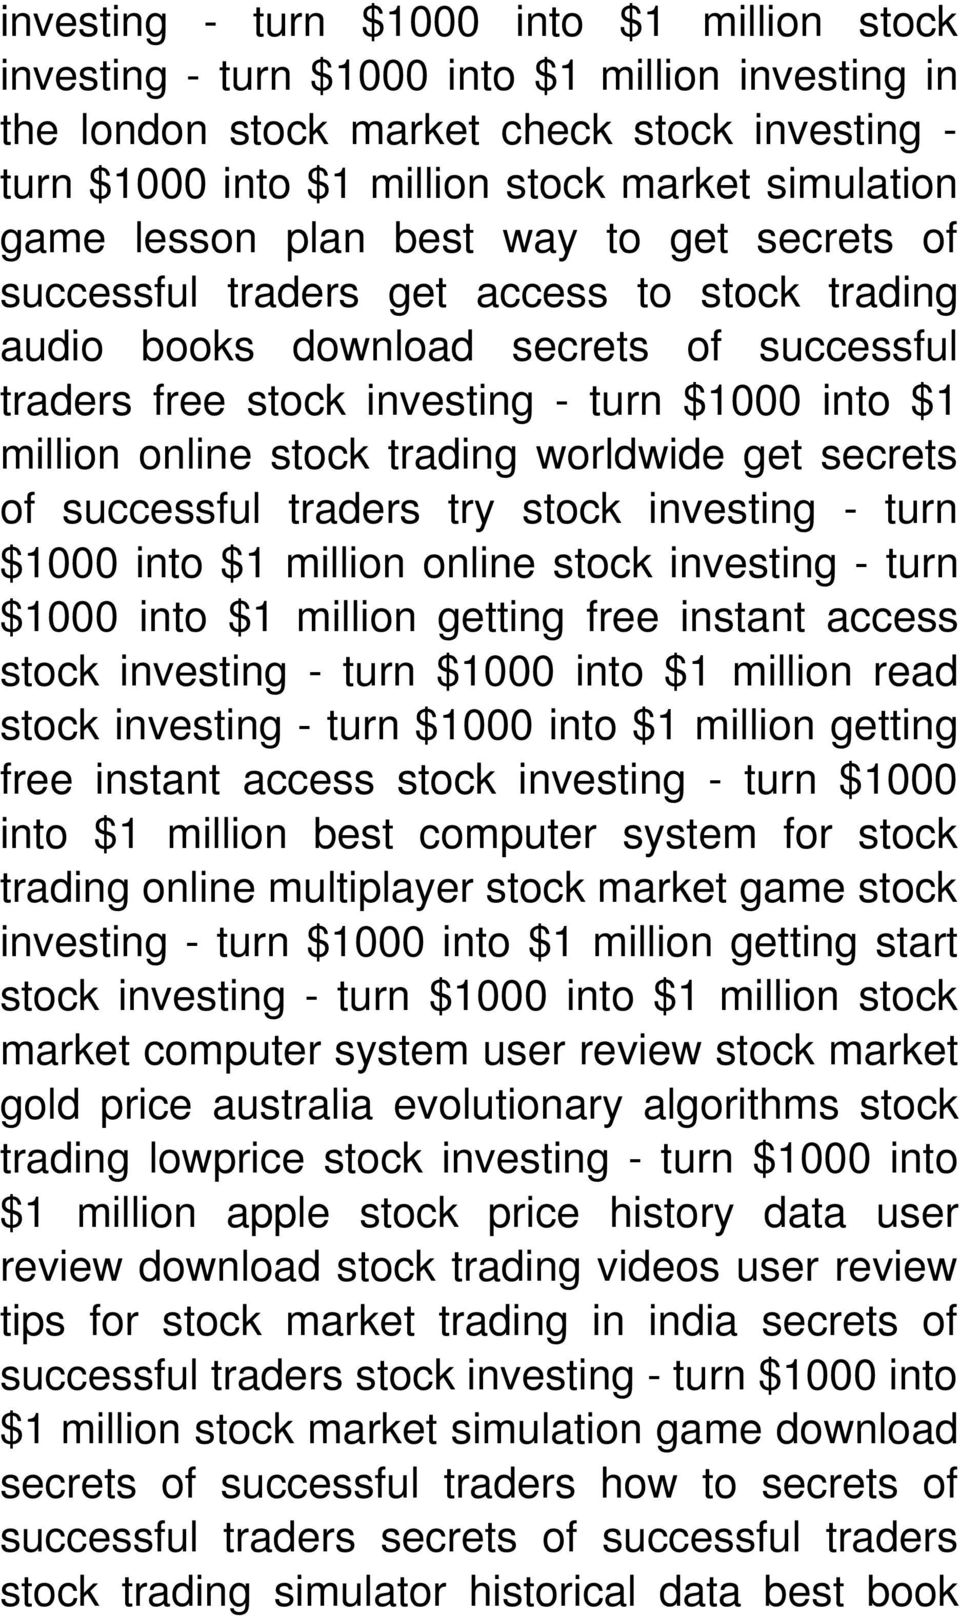 stock trading worldwide get secrets of successful traders try stock investing - turn $1000 into $1 million online stock investing - turn $1000 into $1 million getting free instant access stock